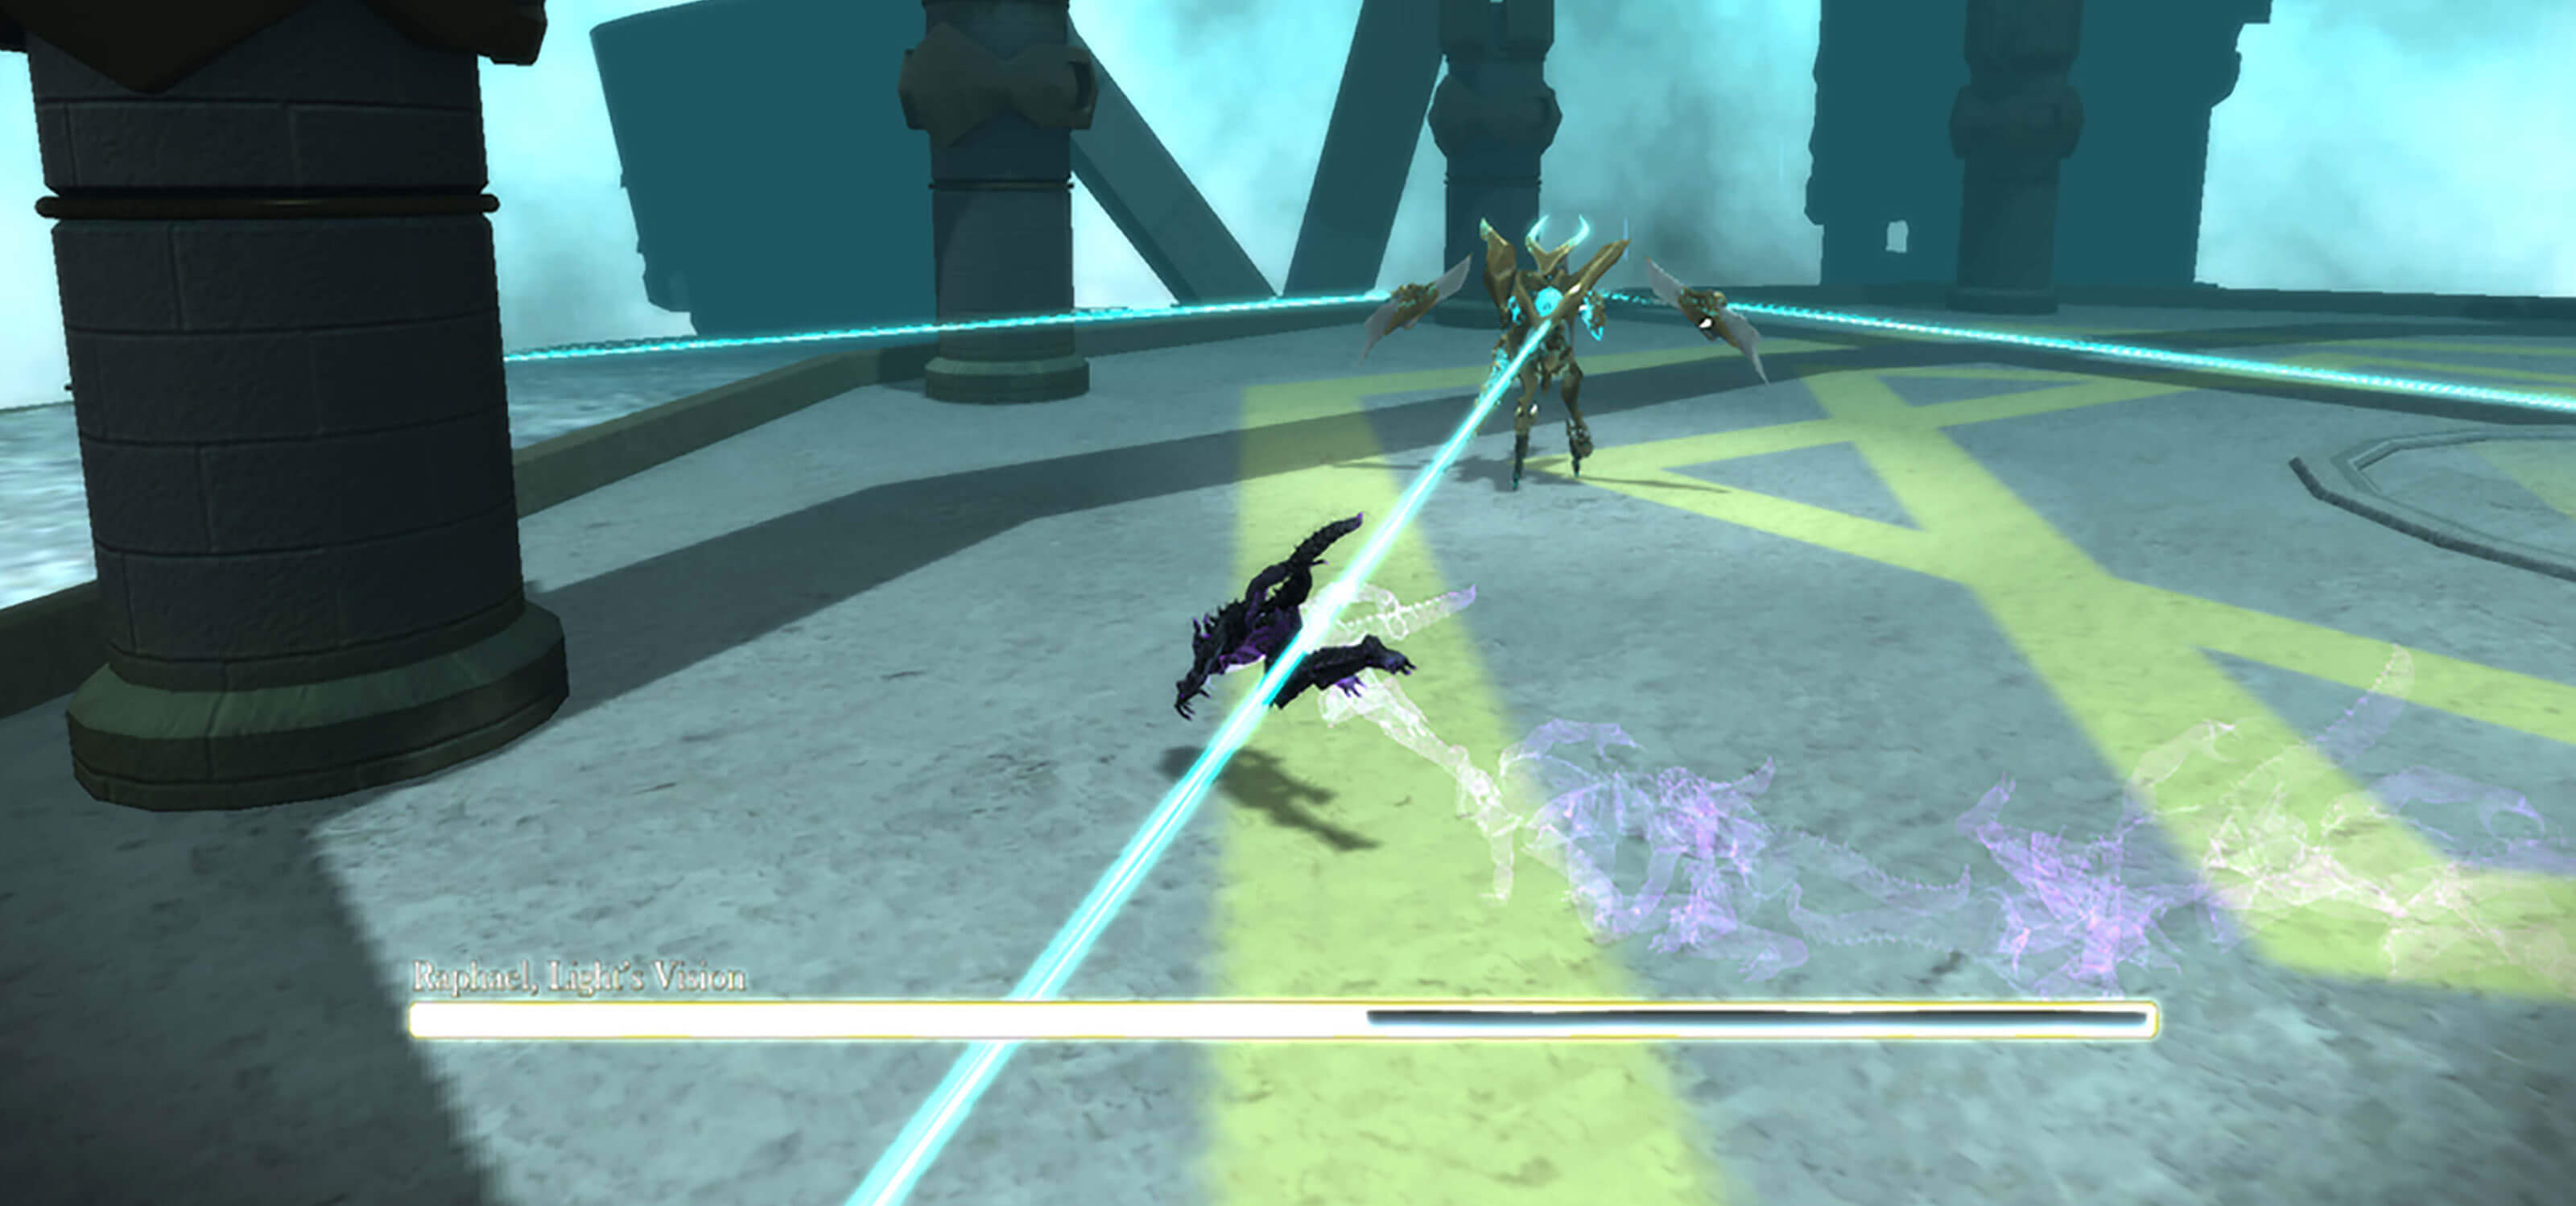 A demon-like figure in black and purple dodges blue beams coming from a large monster on a gray, polygonal parapet.